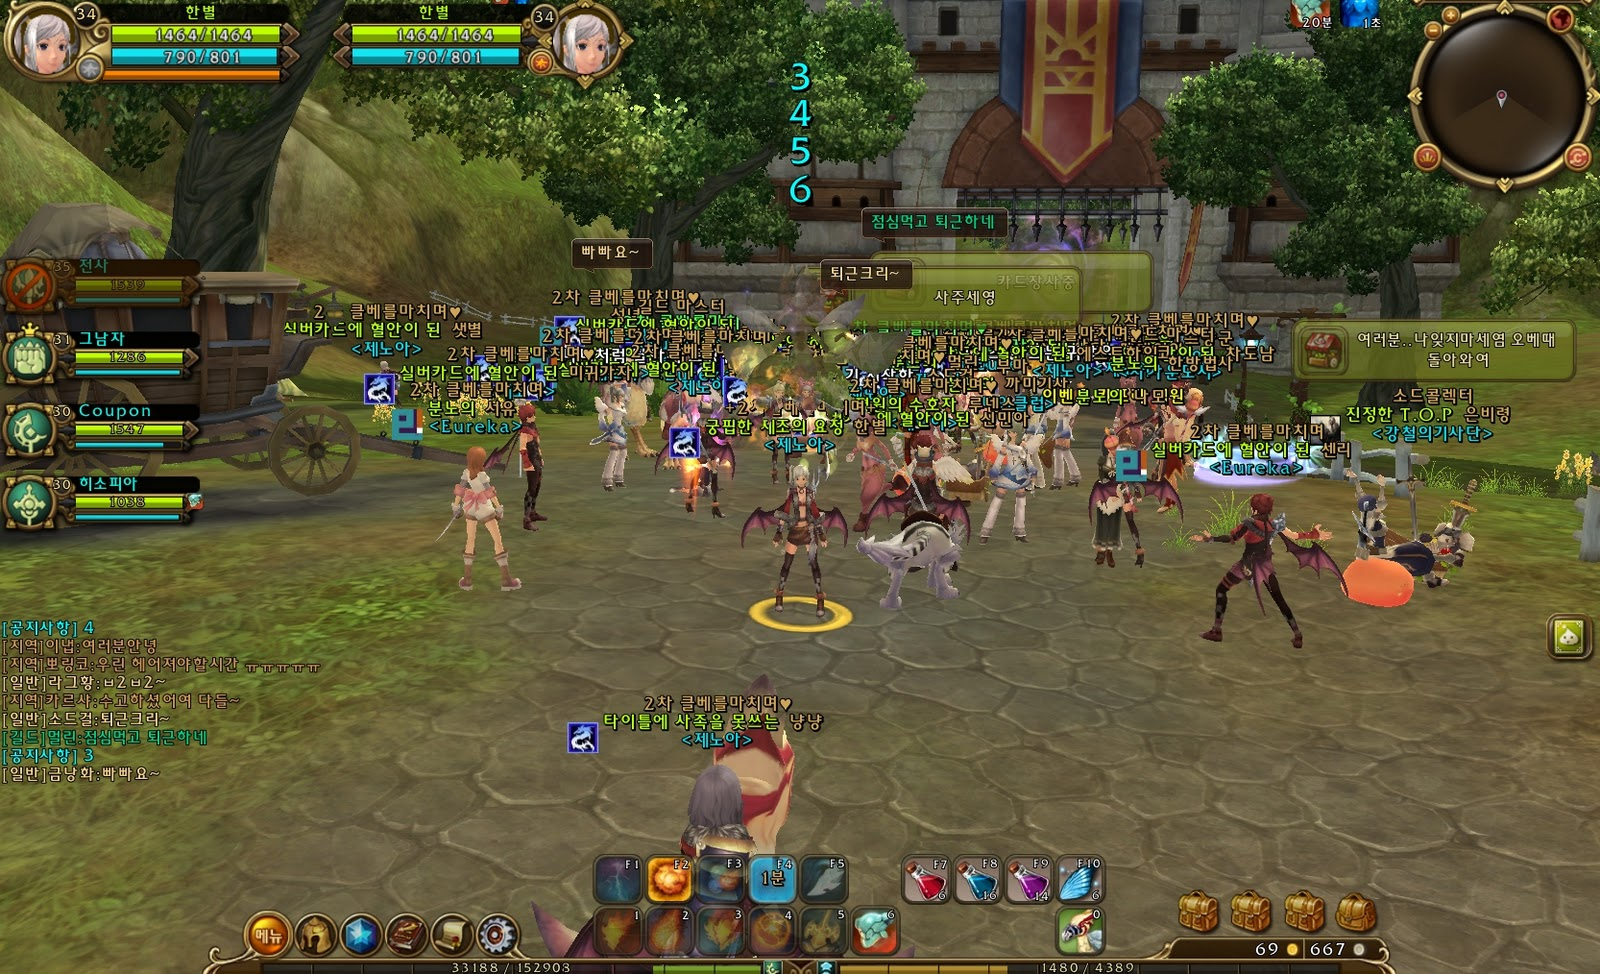 Ragnarok Online 2 – Limited Edition Test announced